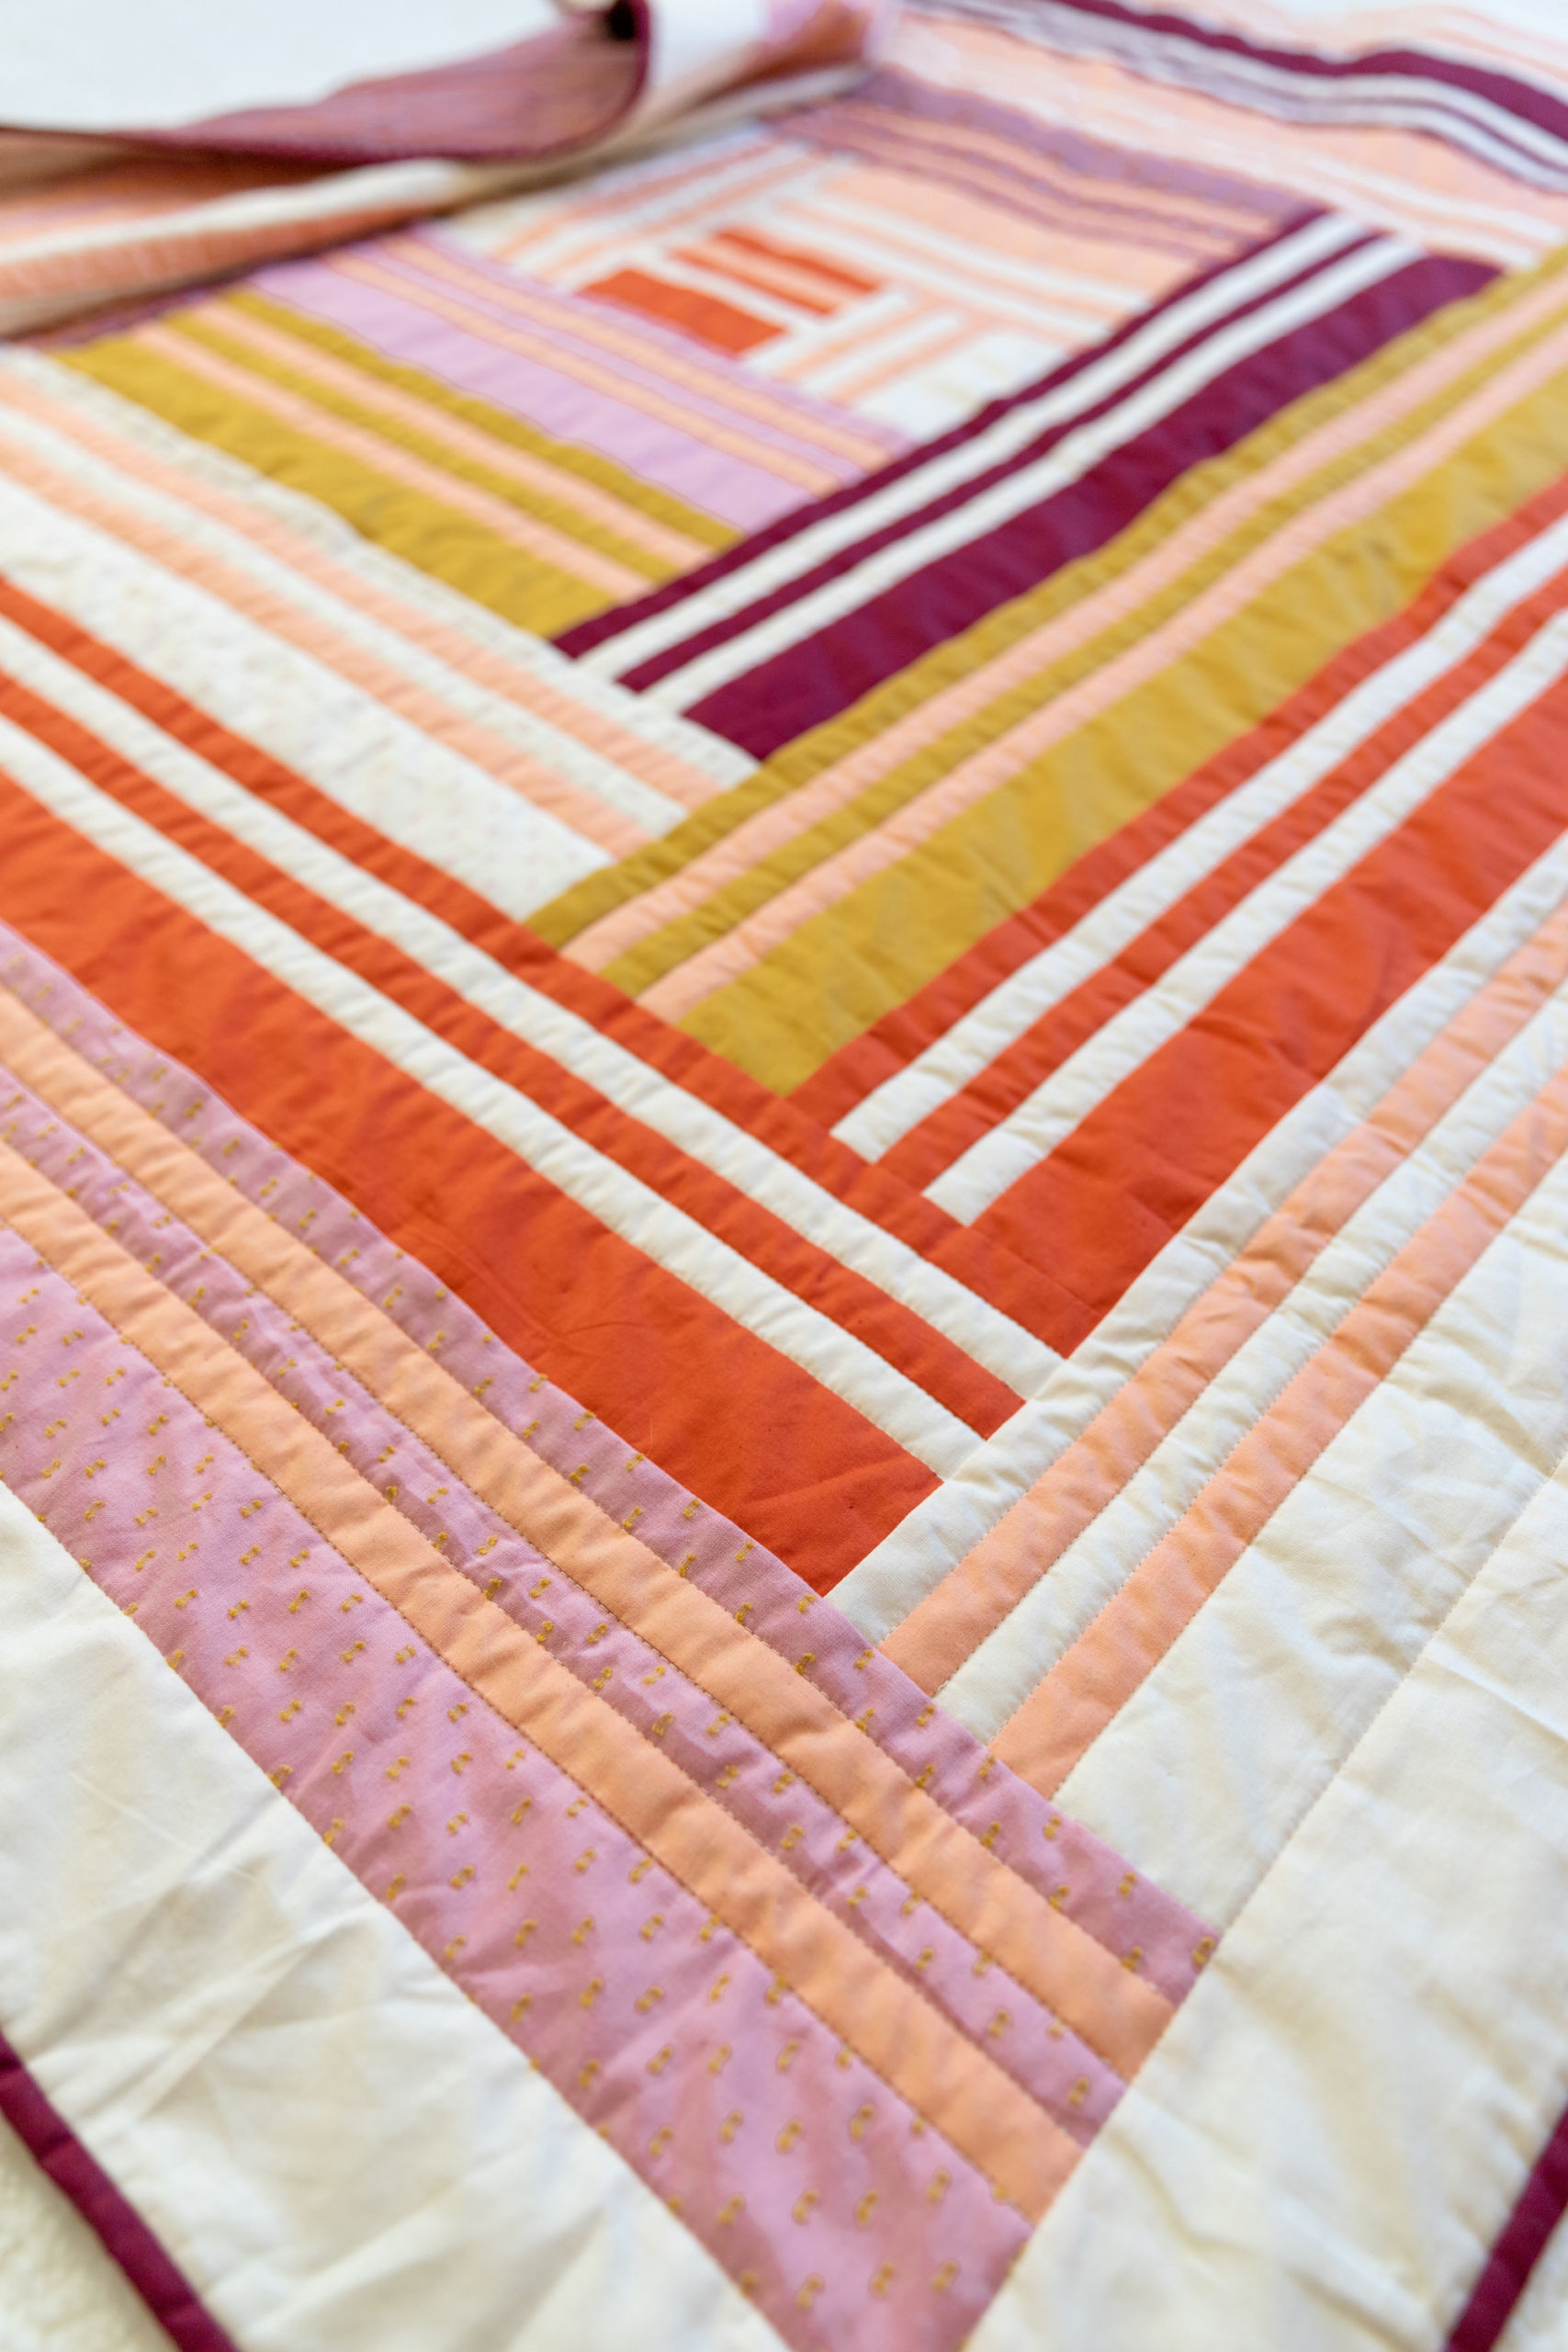 The Grow quilt pattern focuses on strip piecing – a simple quilting technique that creates a beautiful modern design. Beginner Friendly quilt pattern. See lots of beautiful quilt examples! suzyquilts.com #modernquilt